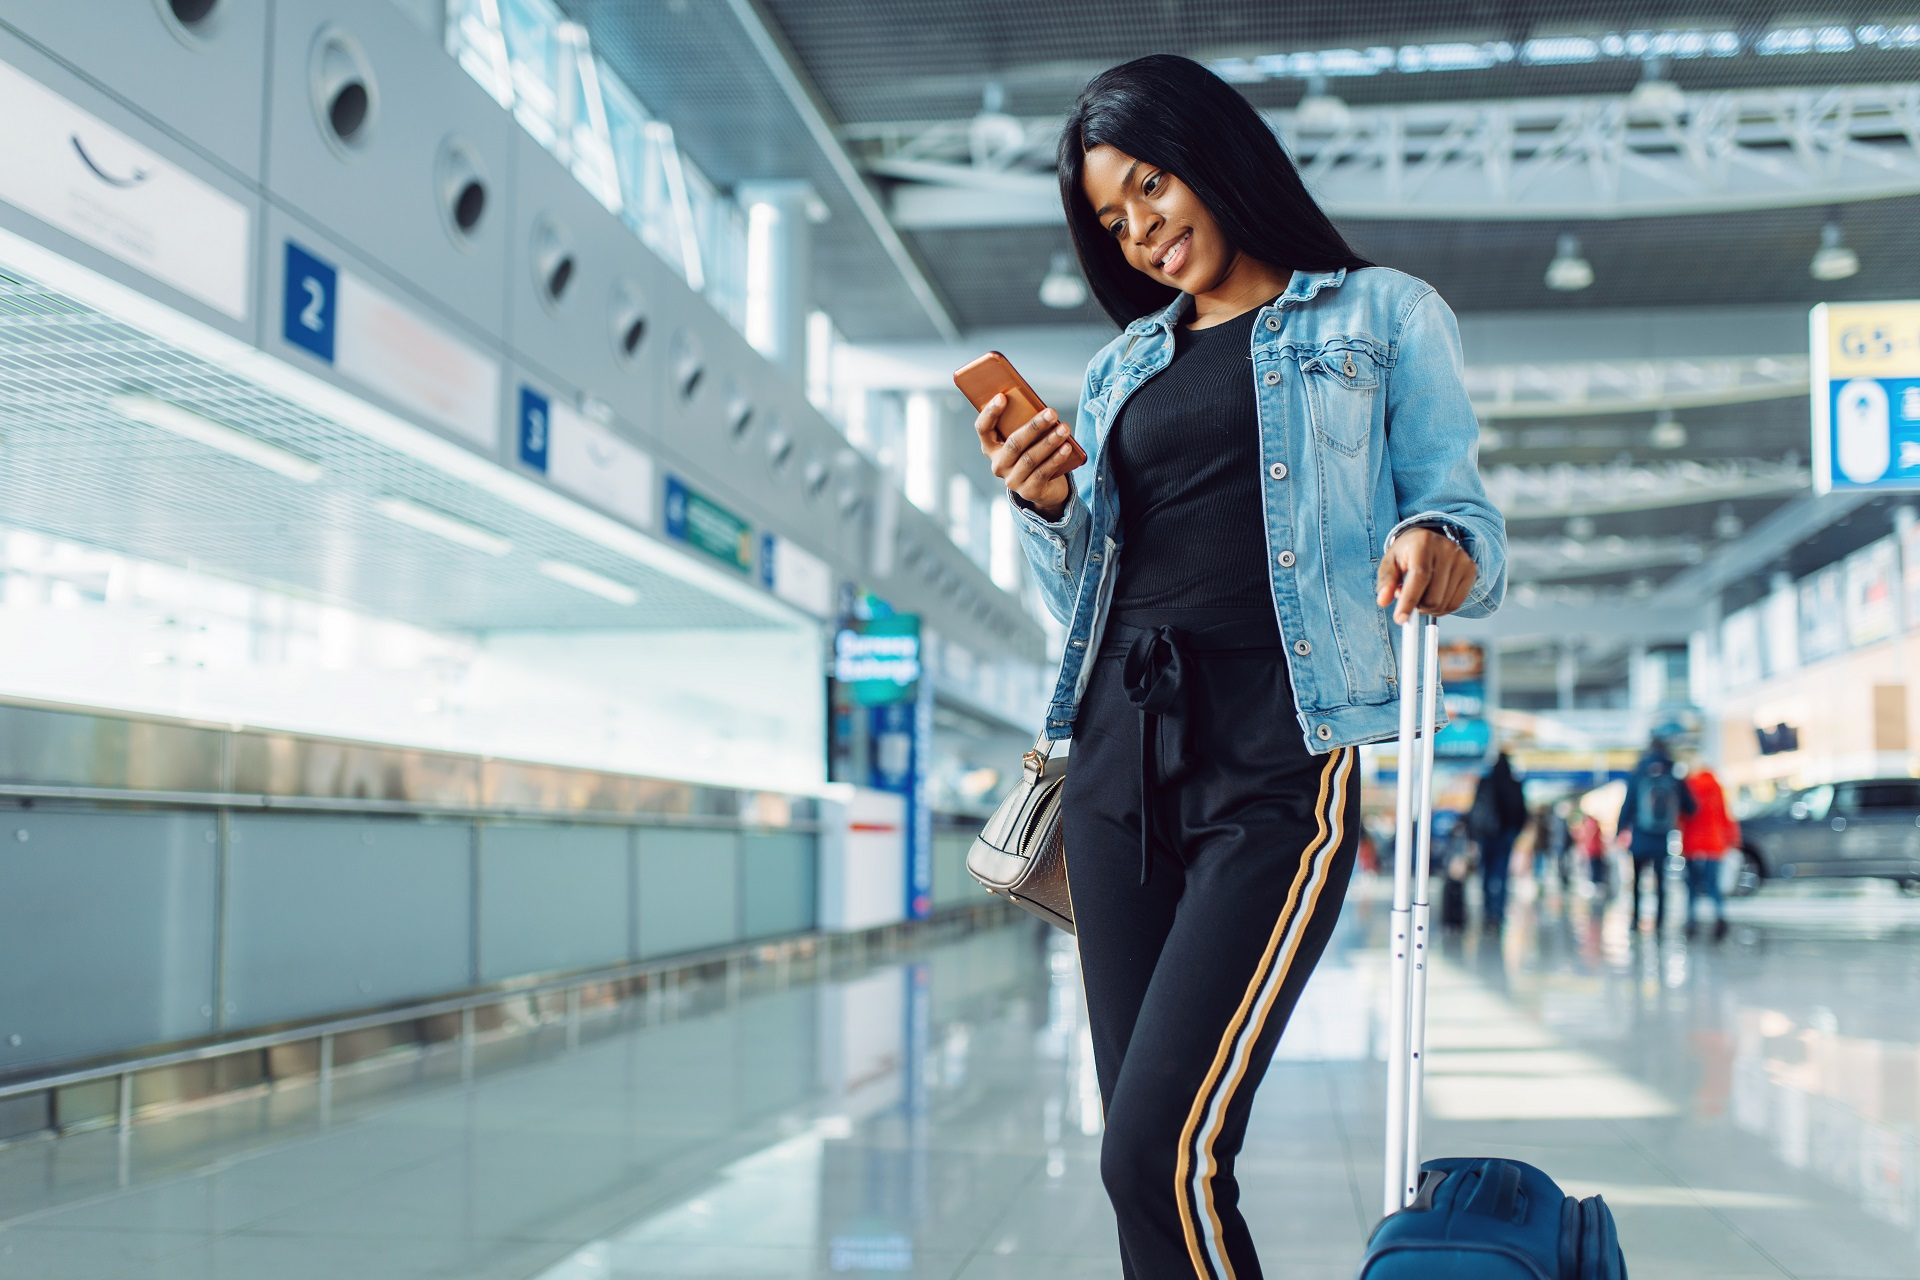 black-female-tourist-in-international-airport-395M4YK